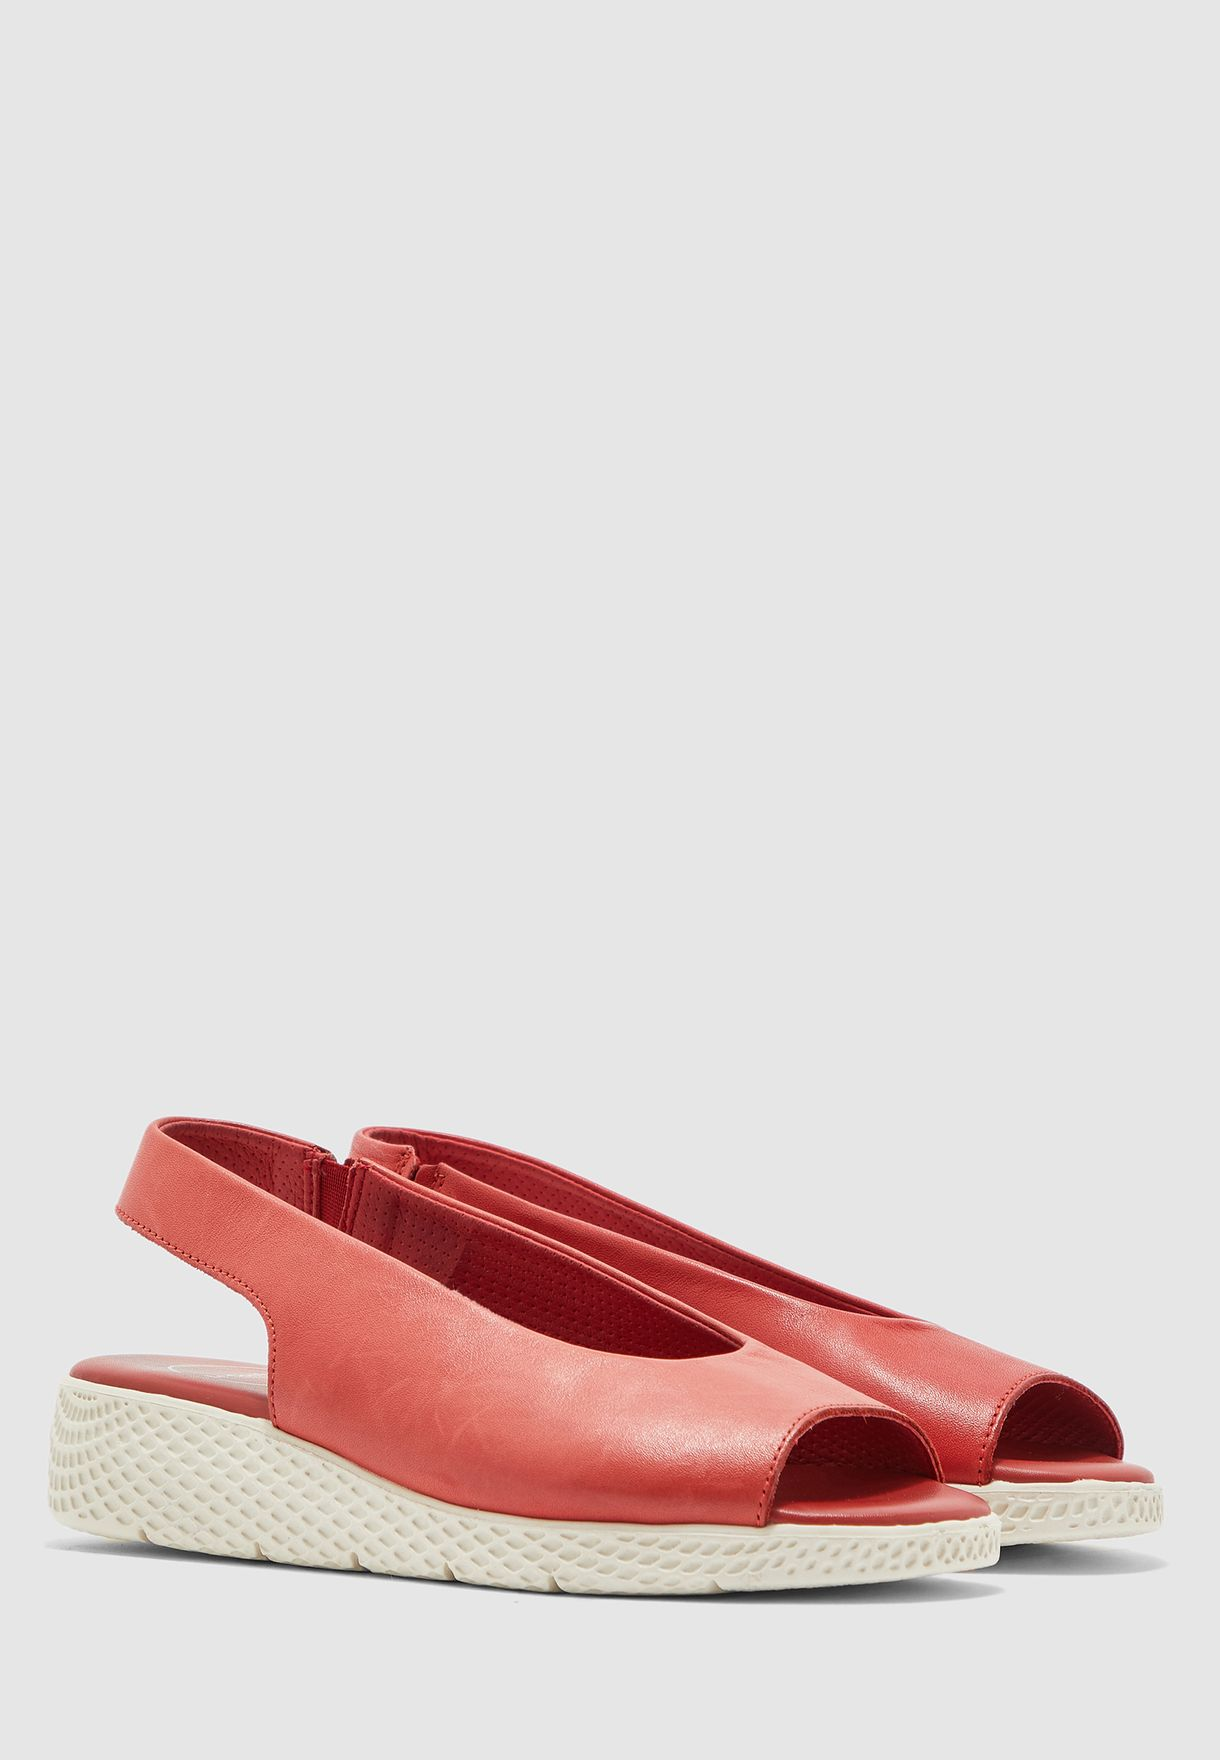 Peep Toe Wedge Sandal